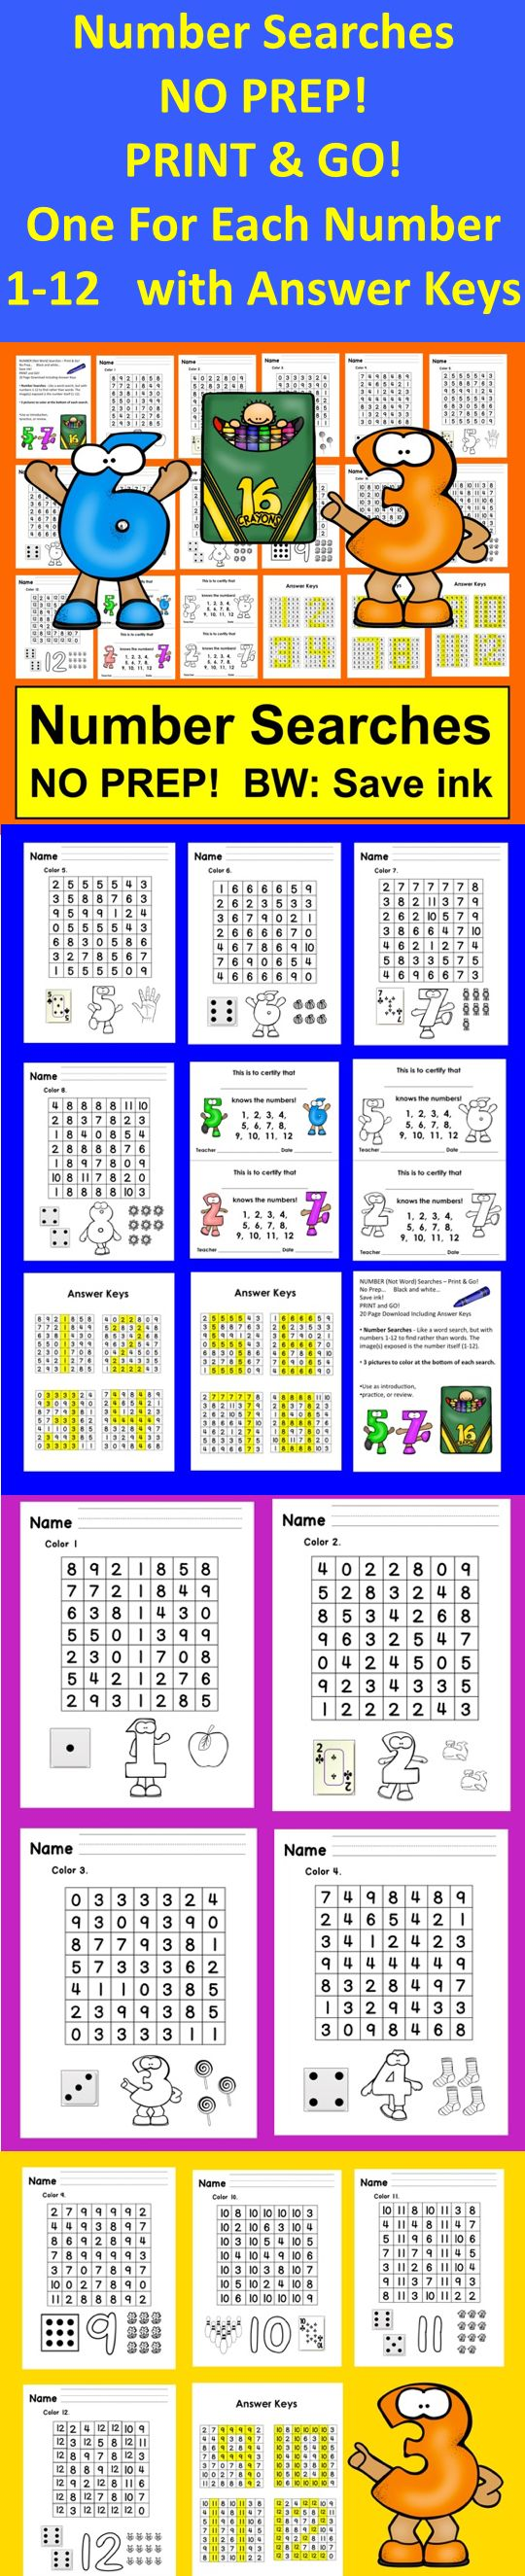 Number Searches No Prep BW: Save ink | Kids learning ...